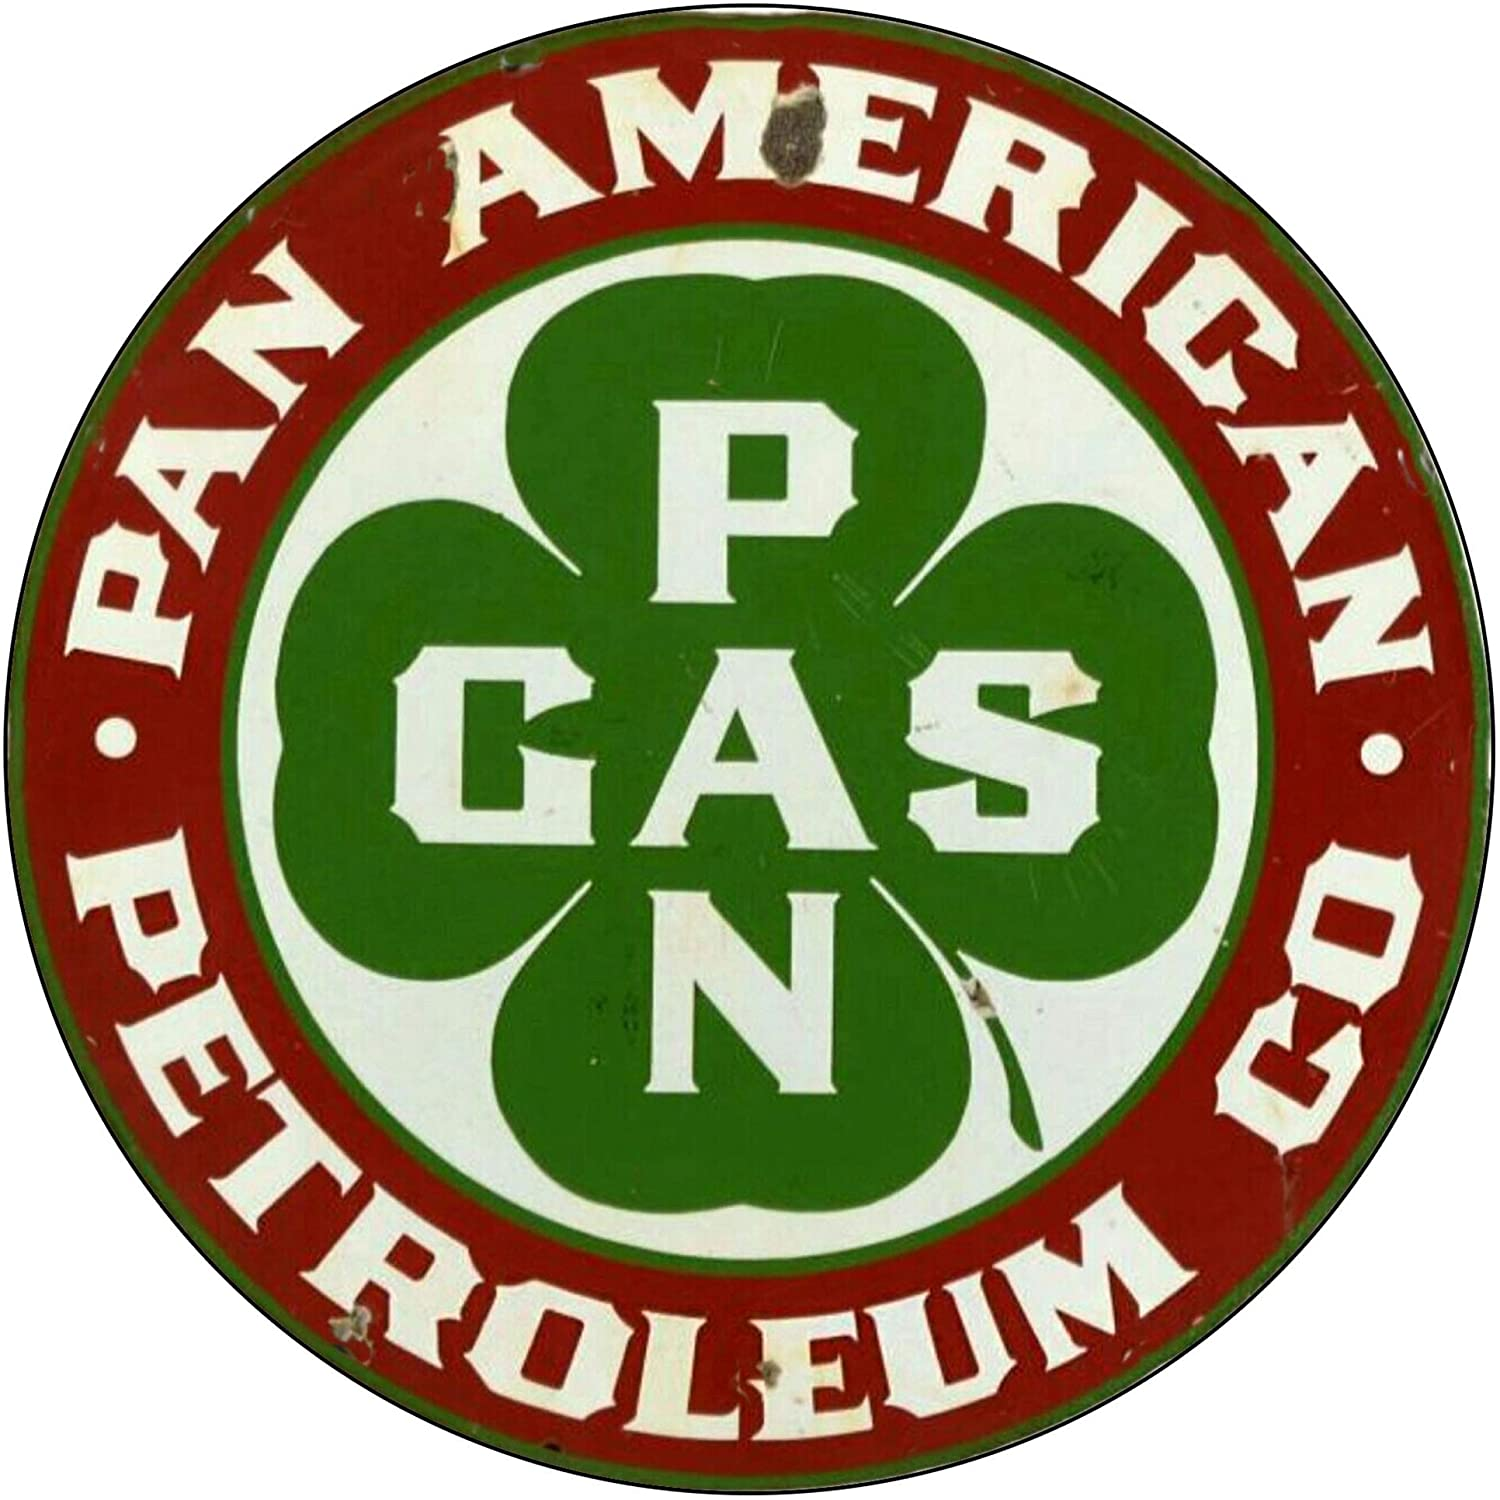 Brotherhood Vintage Gas Sign Reproduction Vintage Metal Signs Round Metal Tin Sign for Garage and Home 8 Inch Diameter – Pan American Petroleum Company